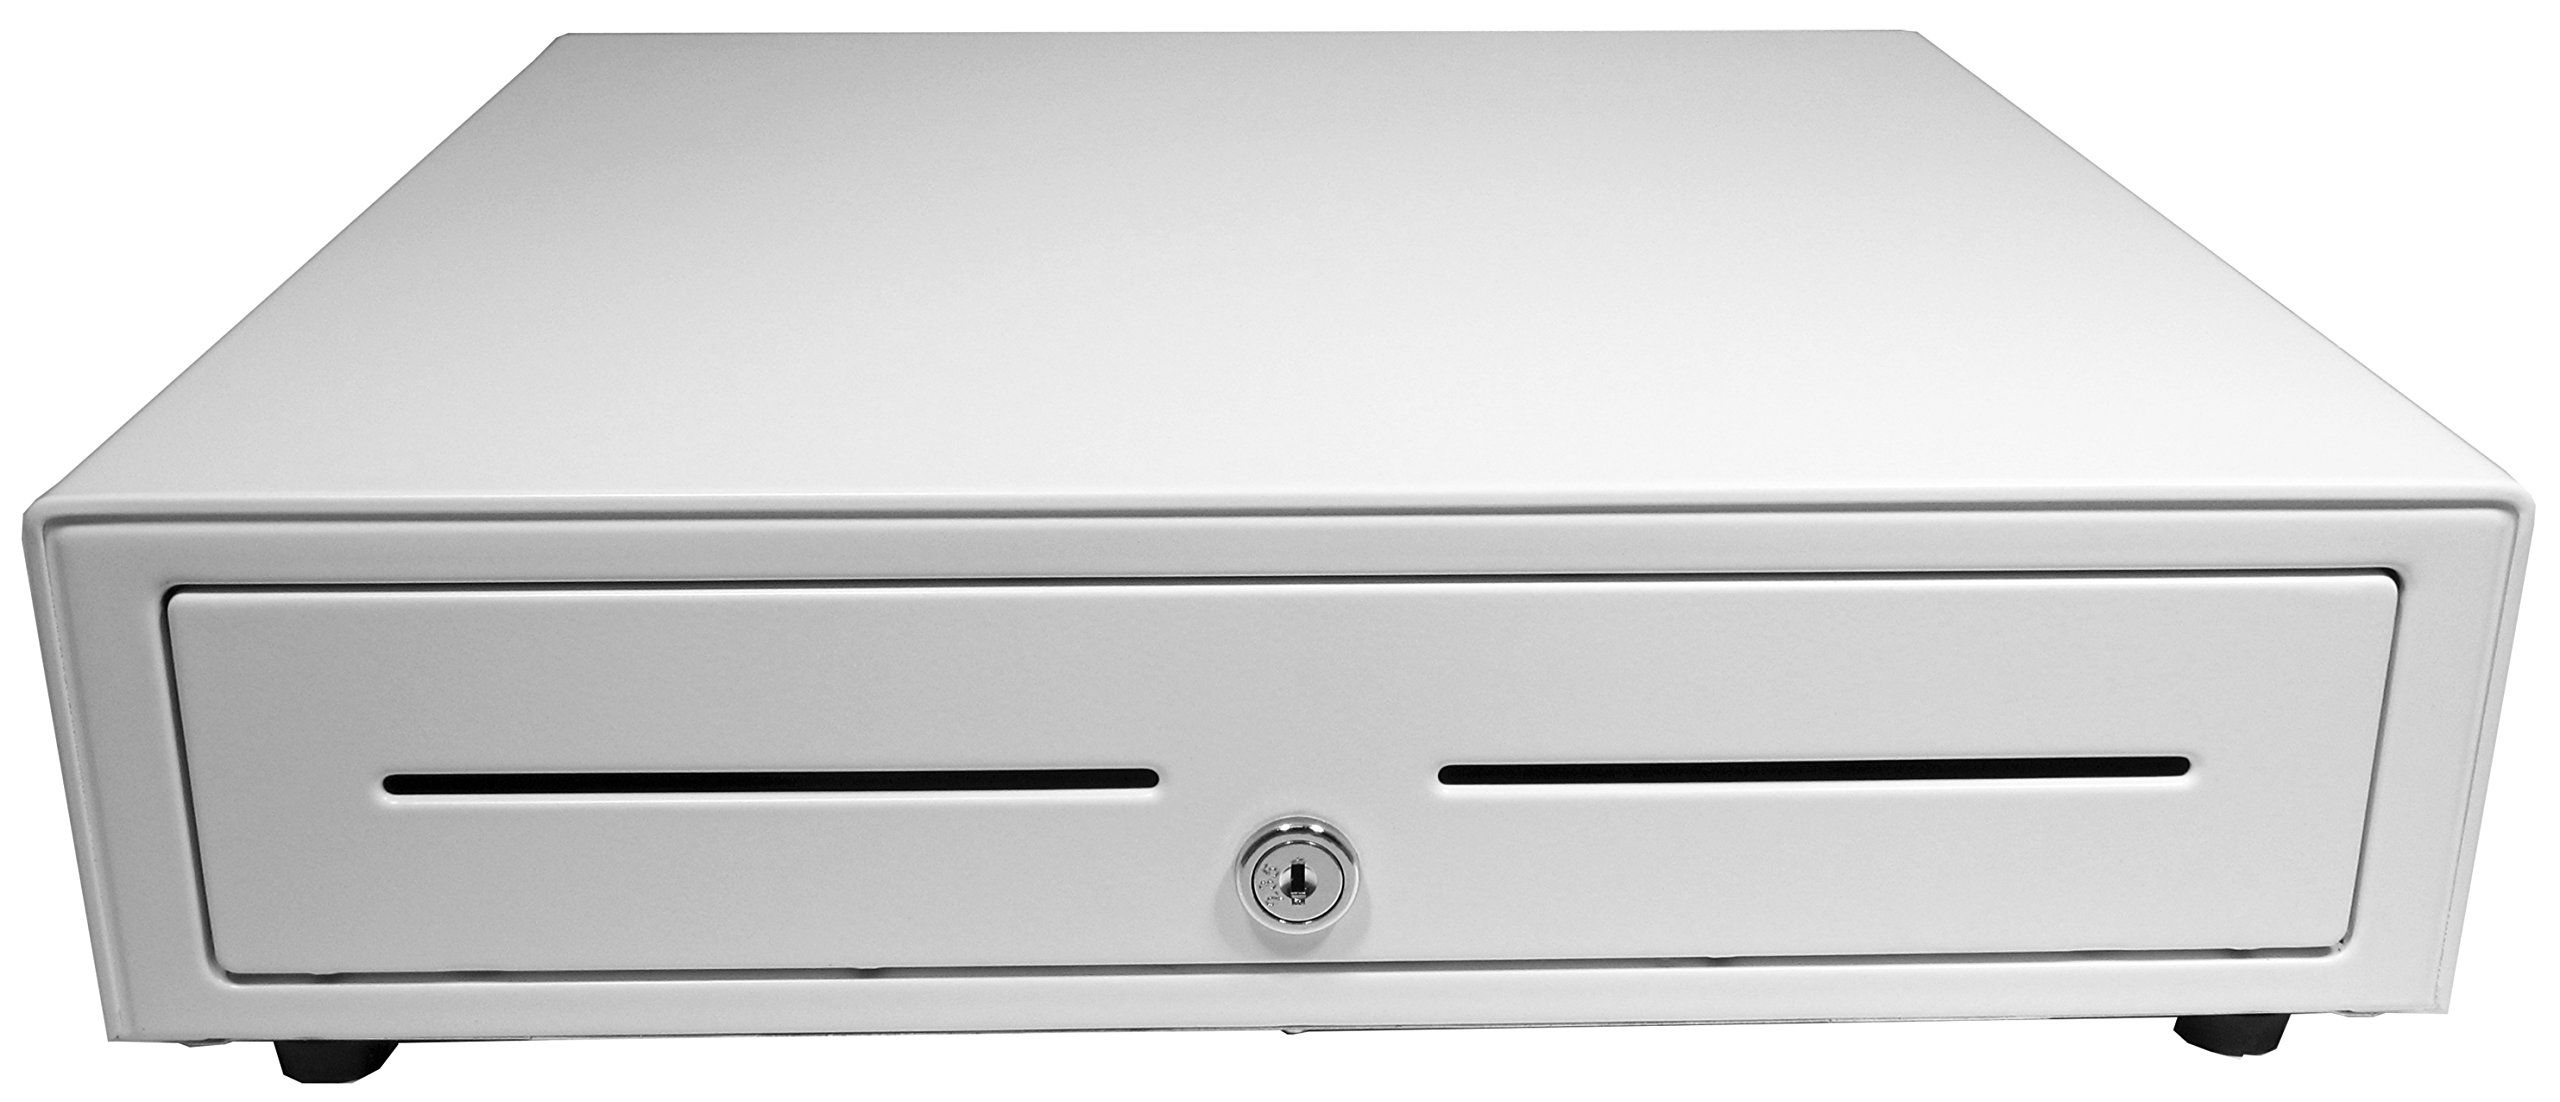 media cash bematech drawer usb open